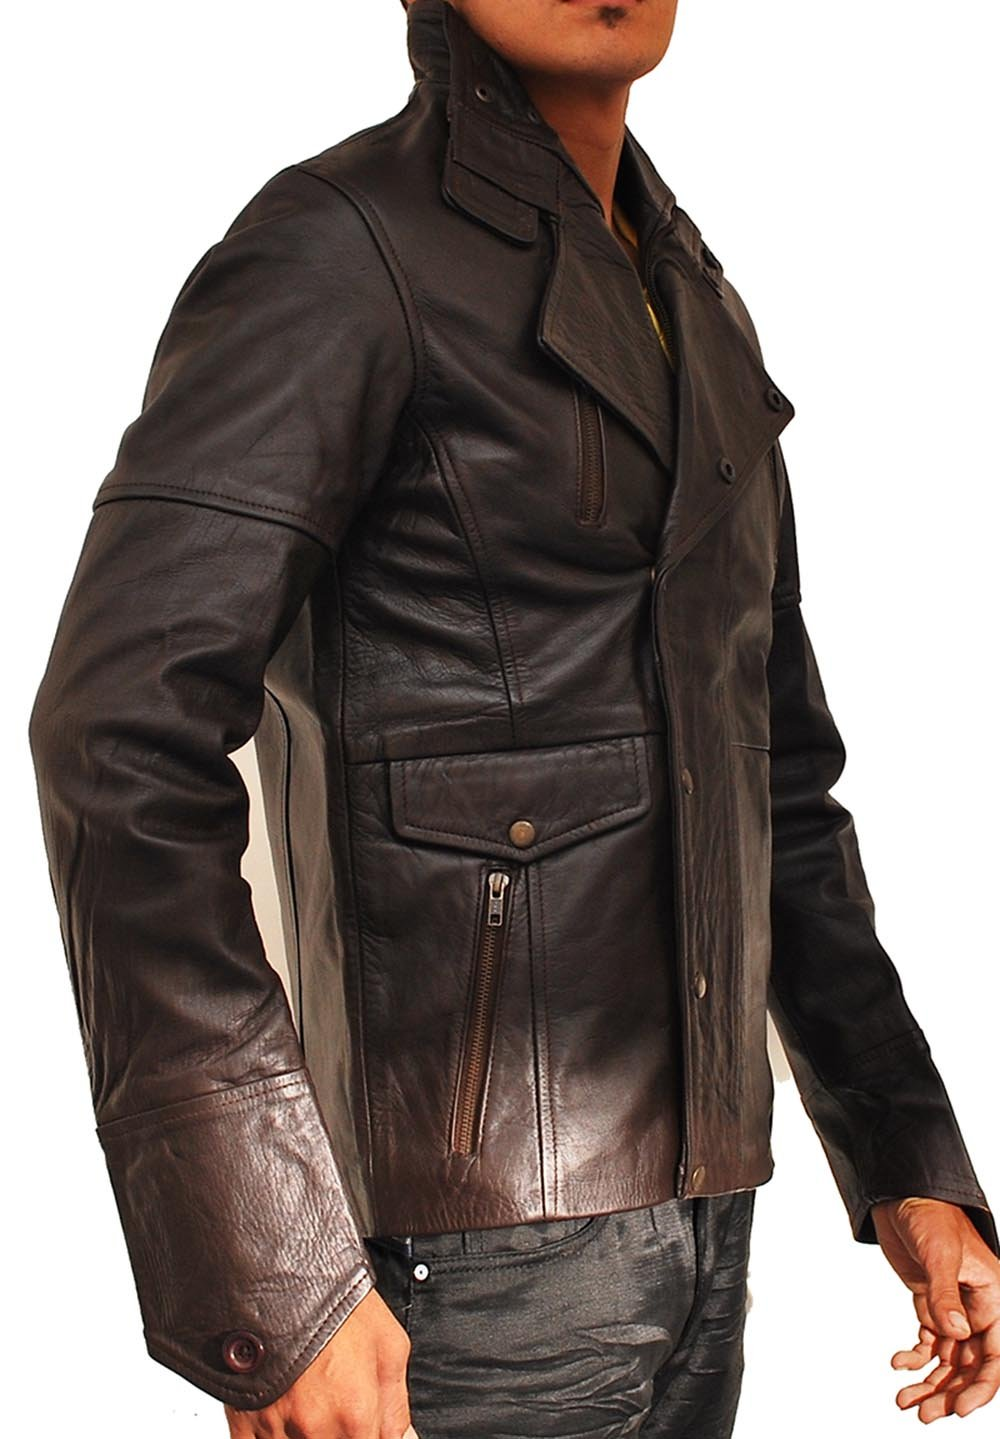 John Travolta From Paris With Love Leather Jacket by MPASSIONS (Image #2)